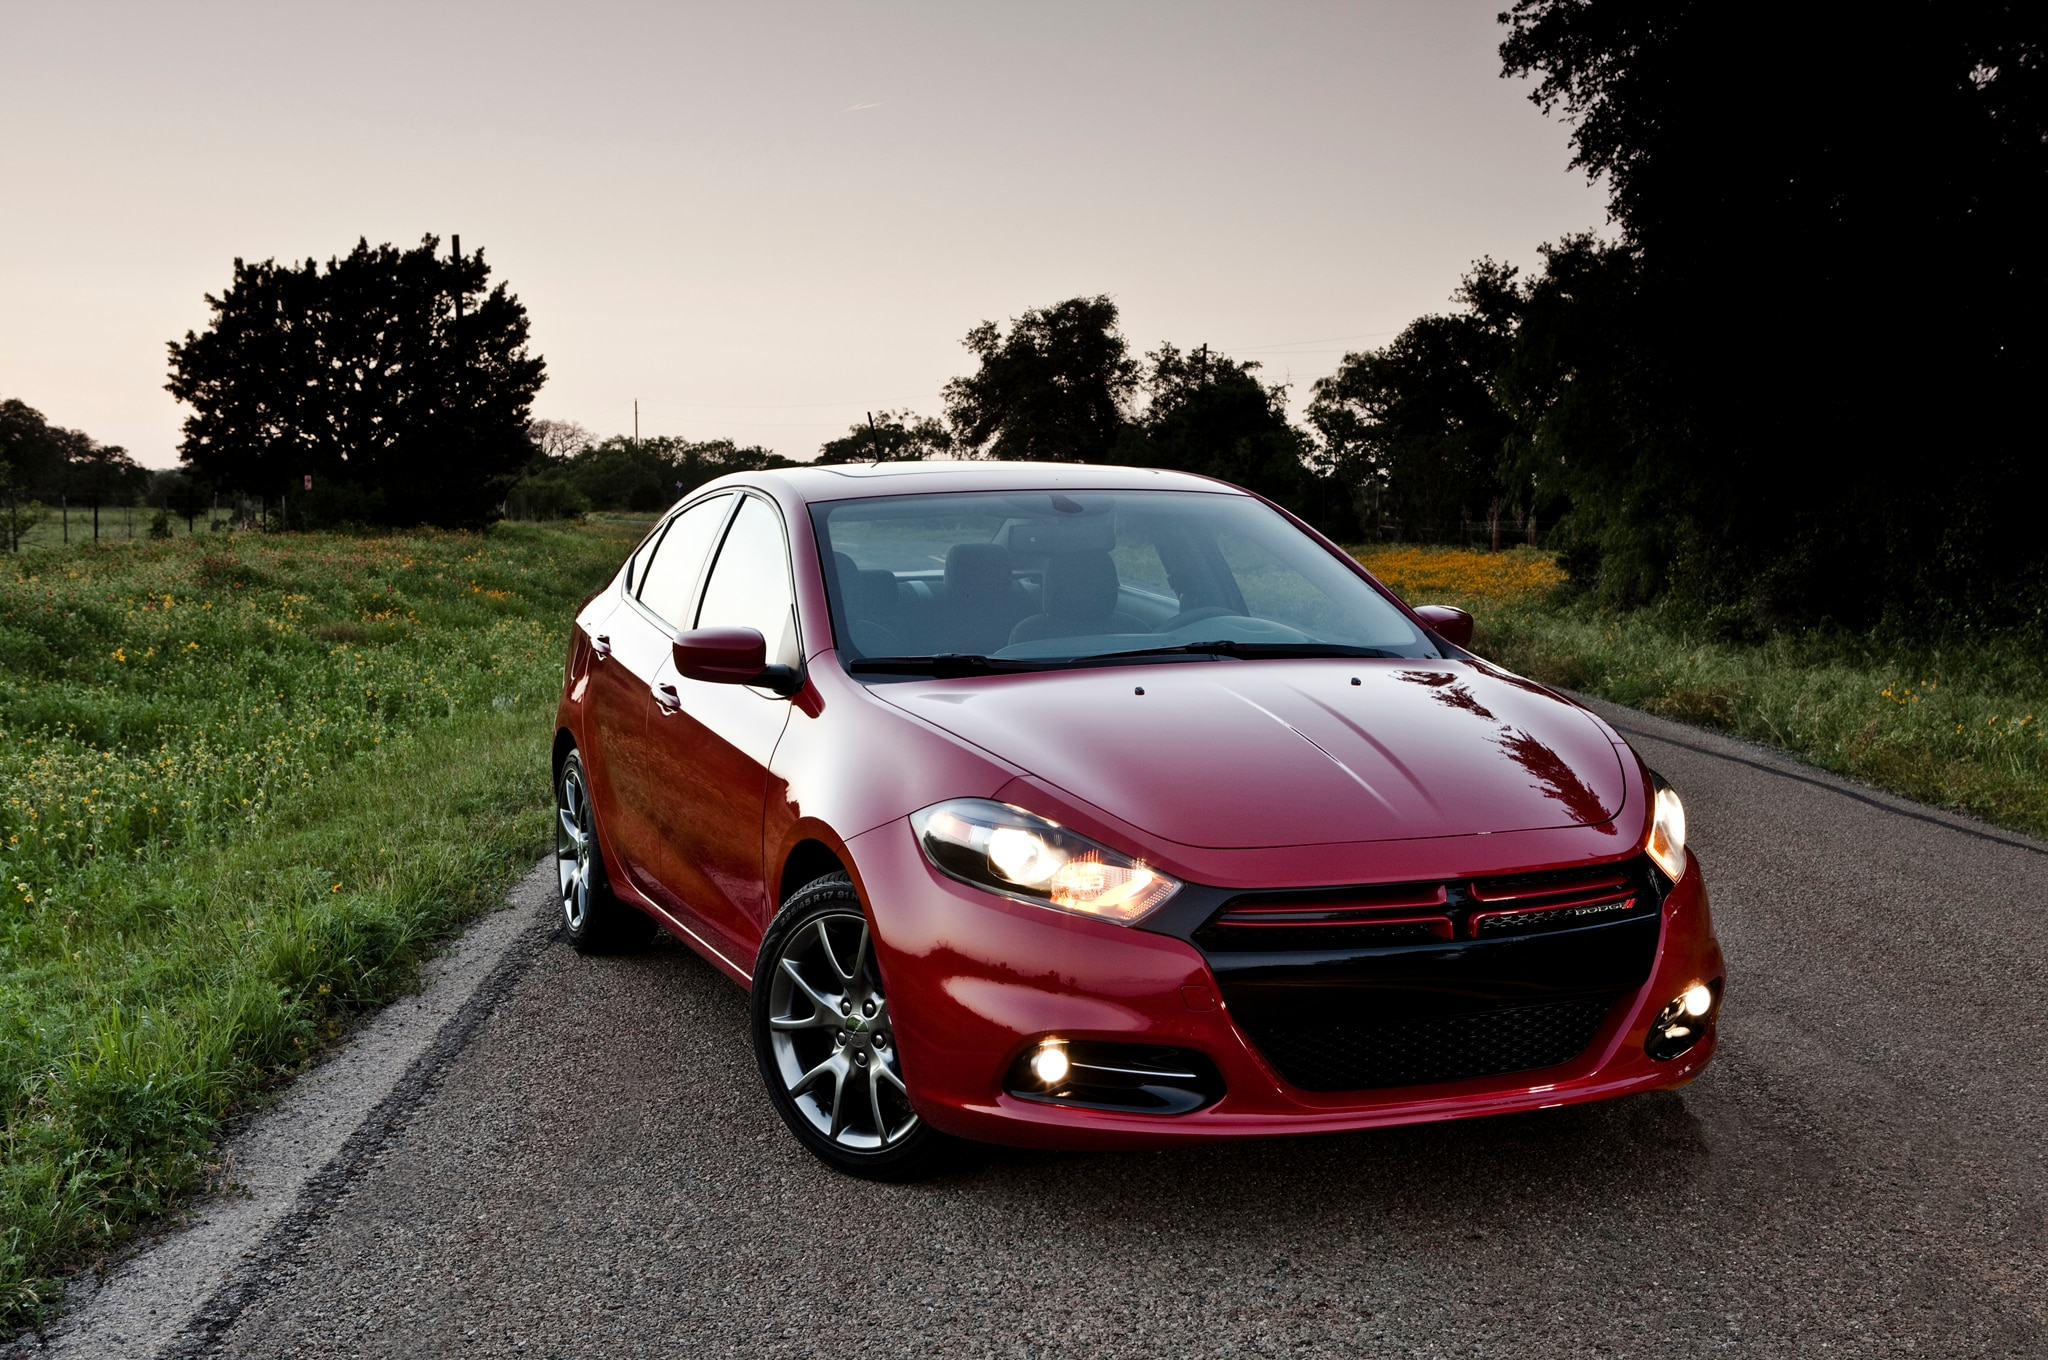 Dodge Dart 0 60 >> Mopar-Modified 2013 Dodge Dart Gets $26,480 MSRP